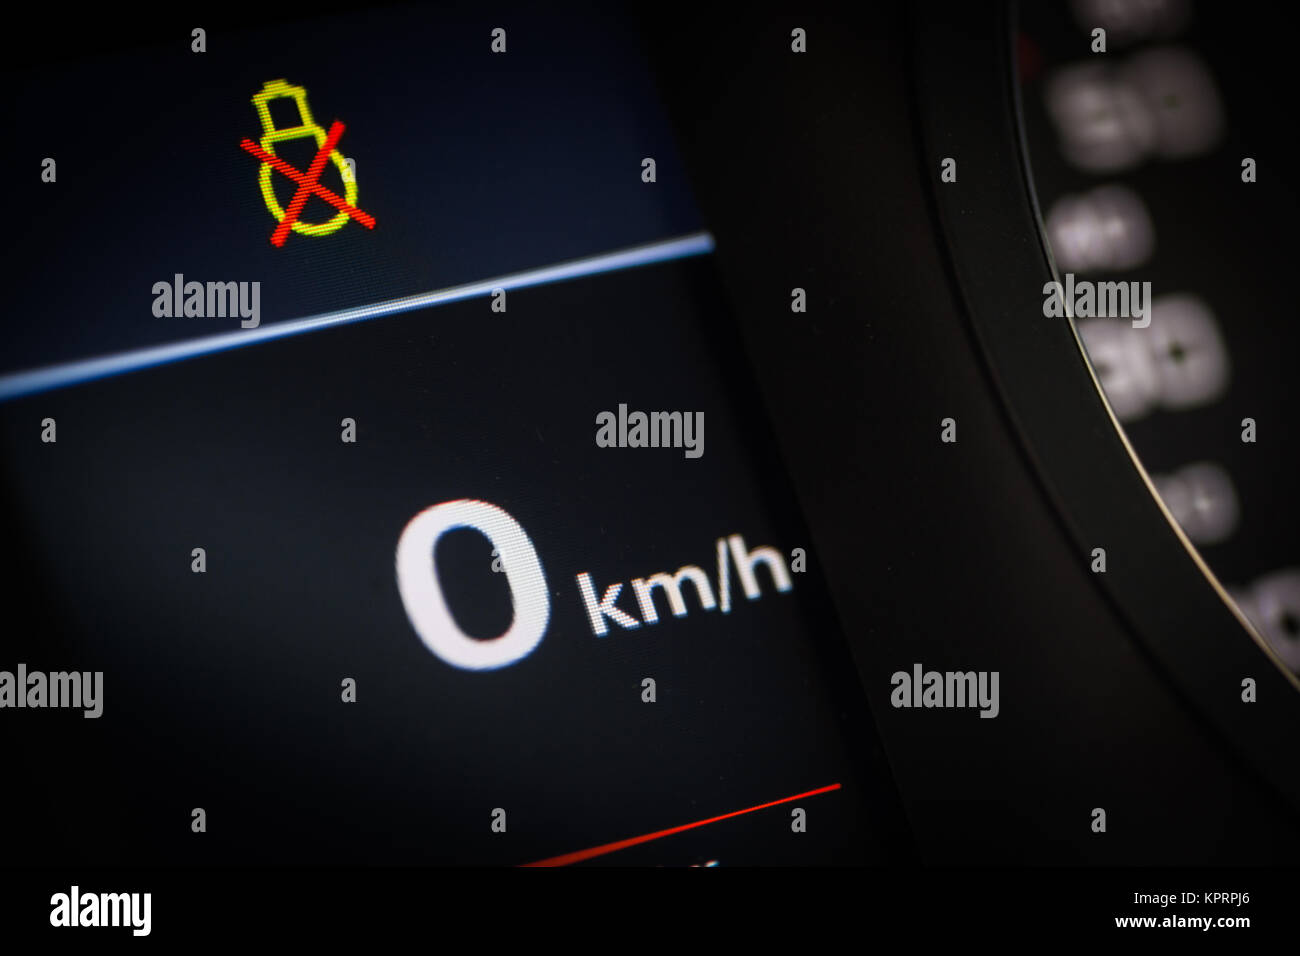 Lights Symbol In A Car Stock Photo 168938398 Alamy